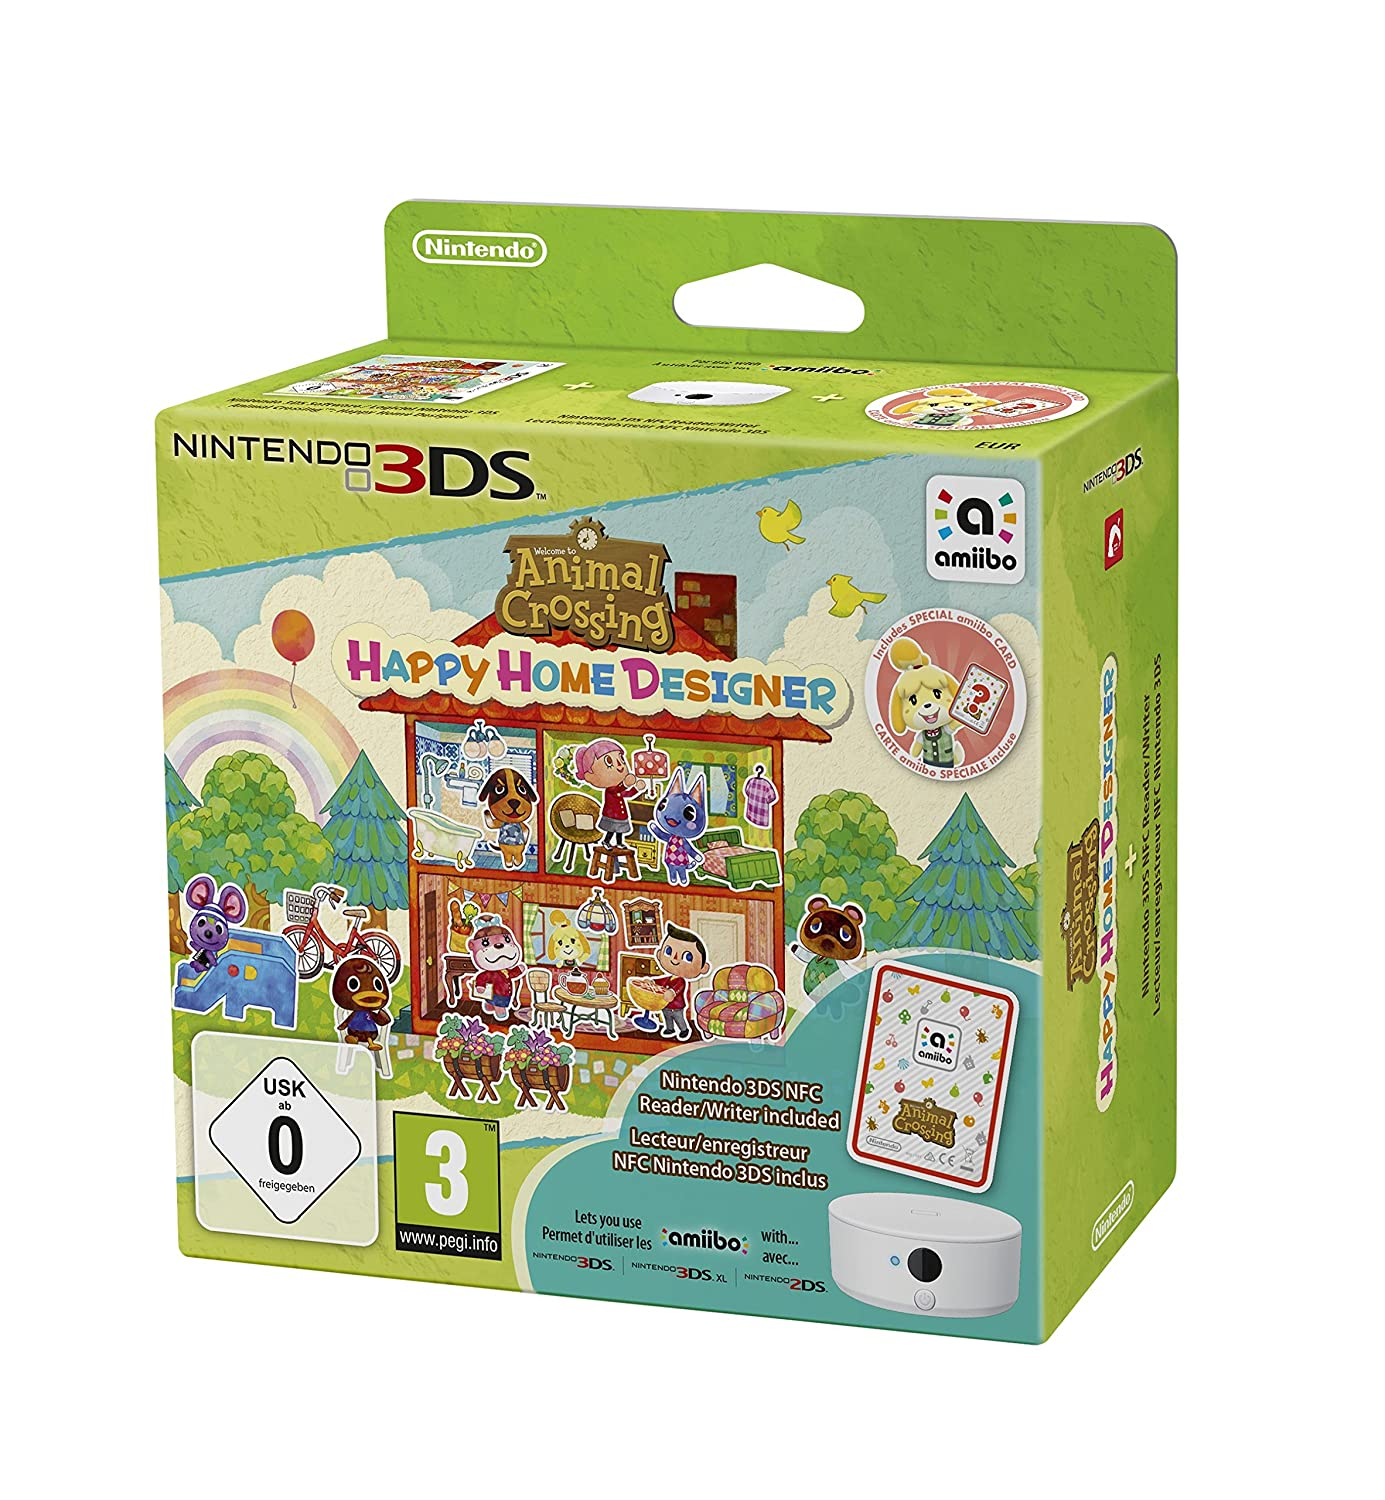 Animal Crossing: Happy Home Designer + Amiibo Card + NFC Reader/Writer  (Nintendo 3DS): Amazon.co.uk: PC U0026 Video Games